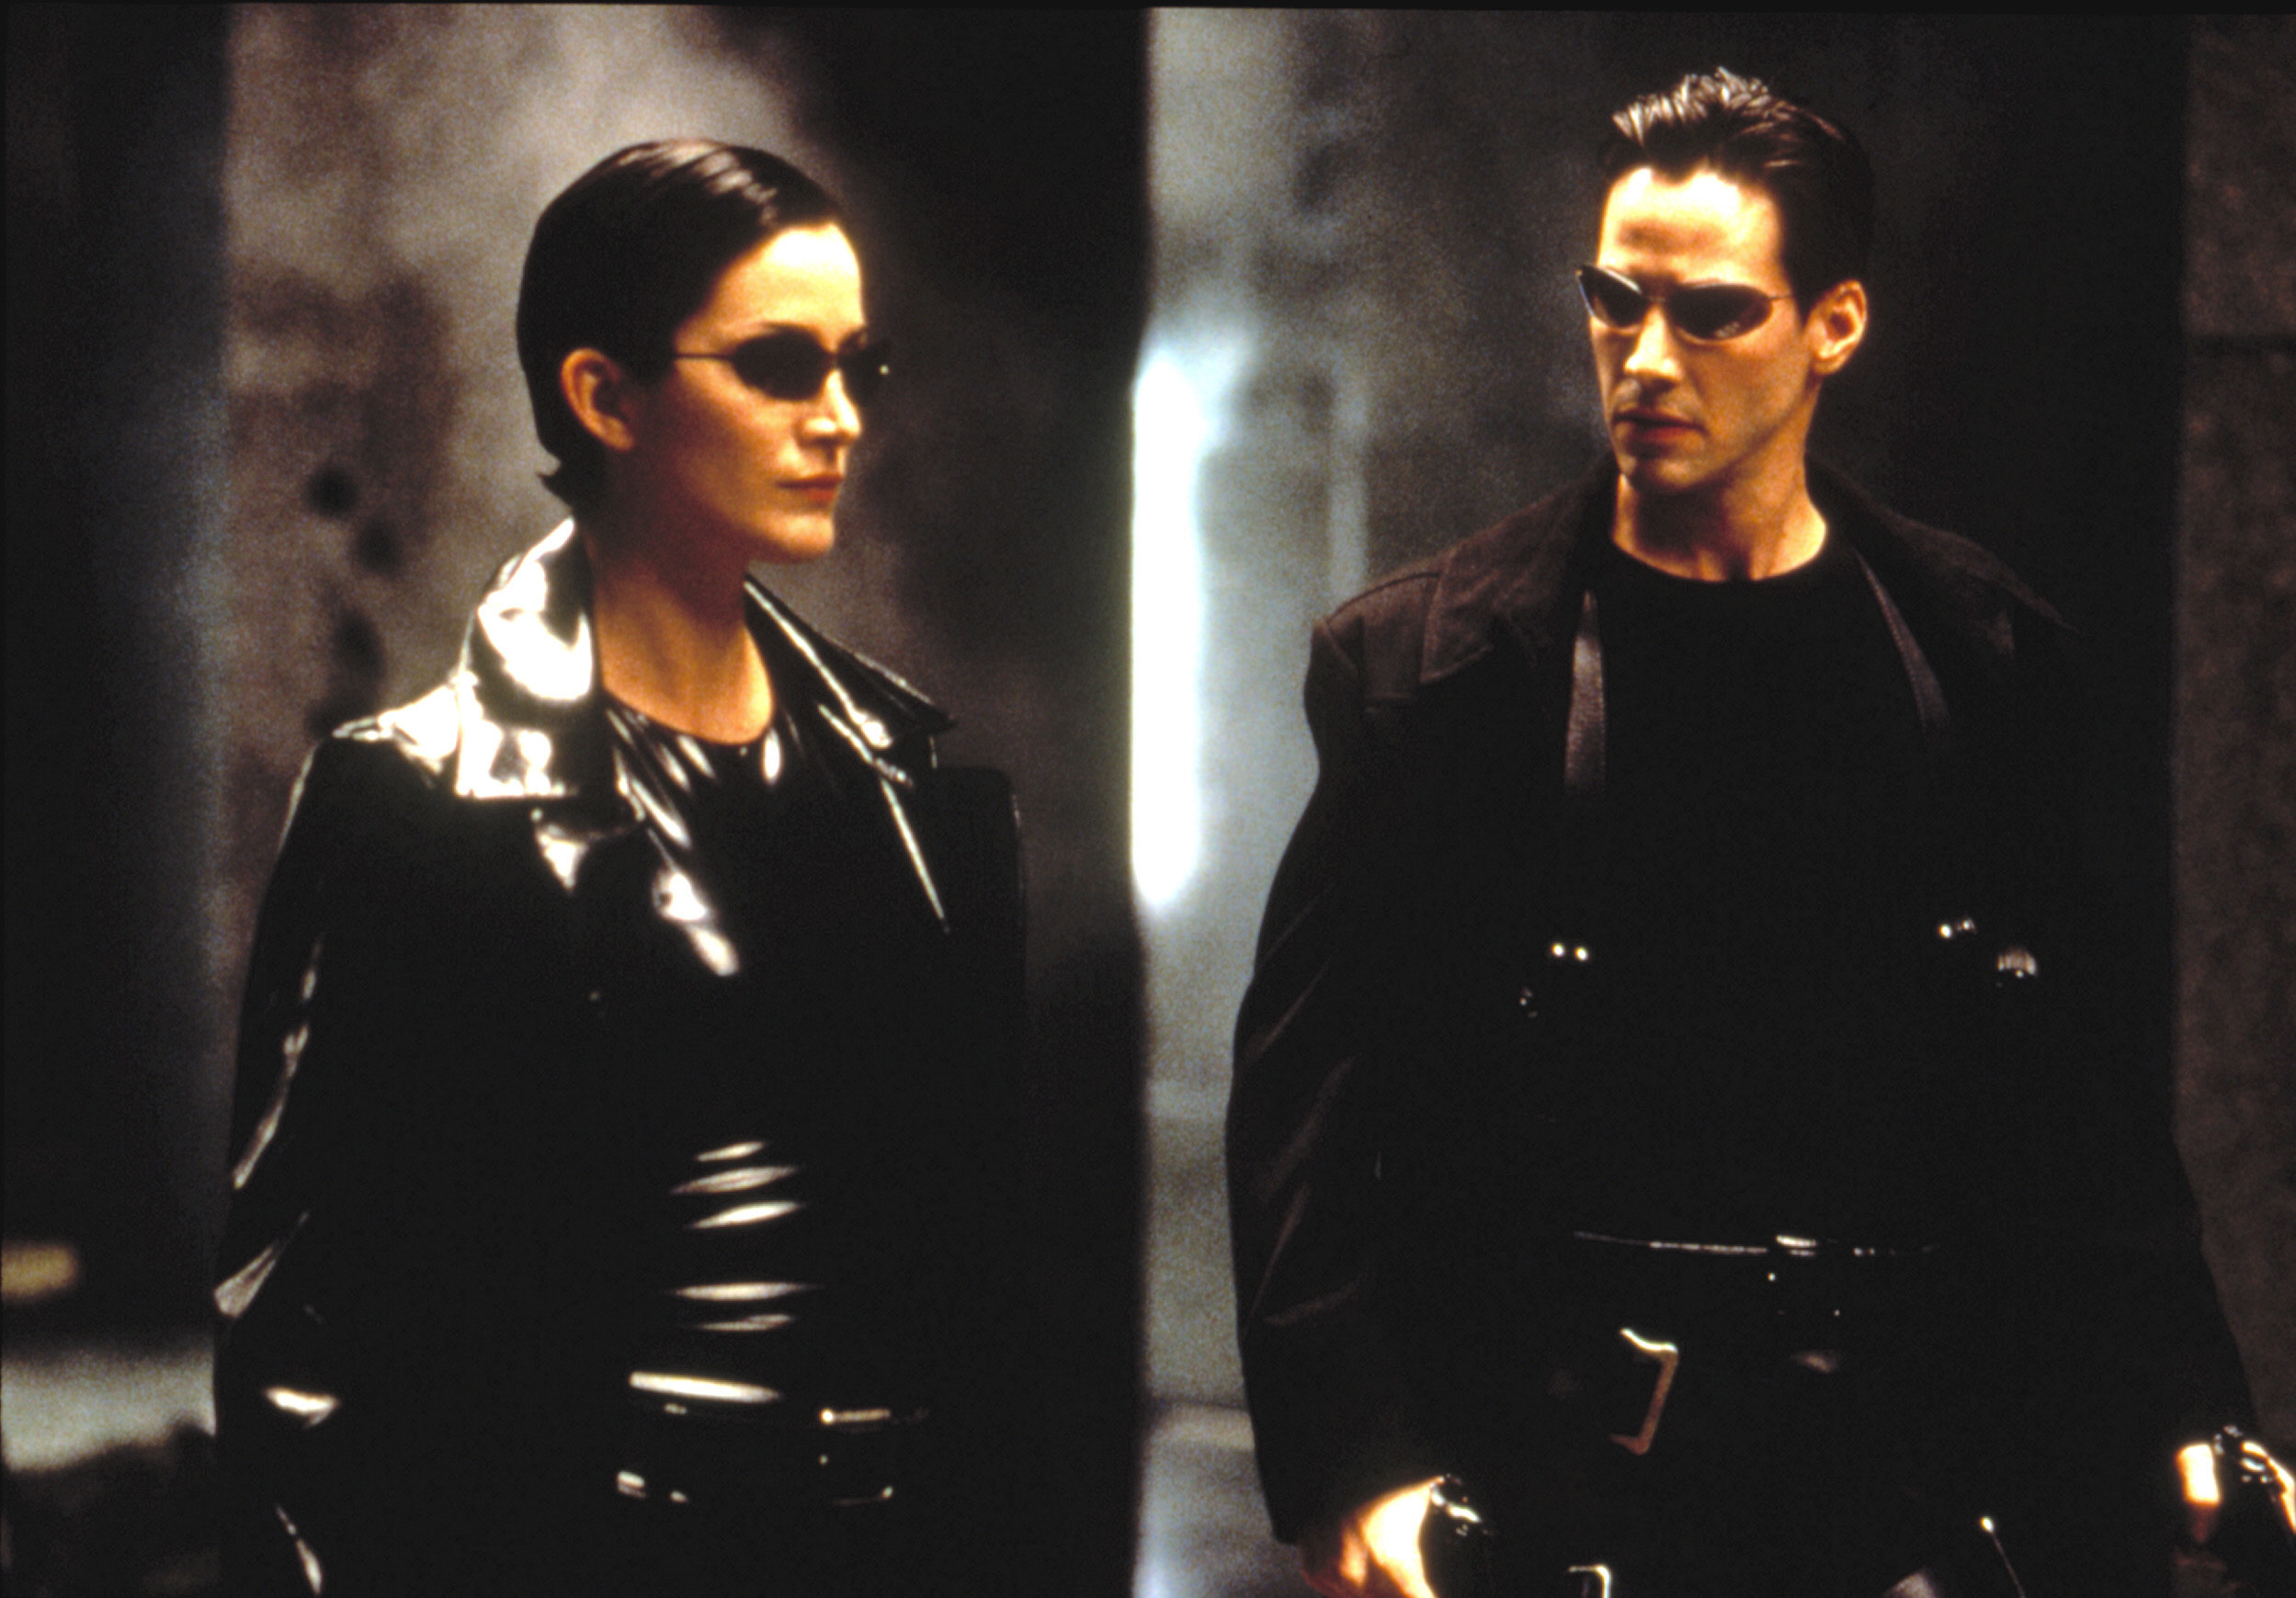 Moss and Keanu Reeves in The Matrix